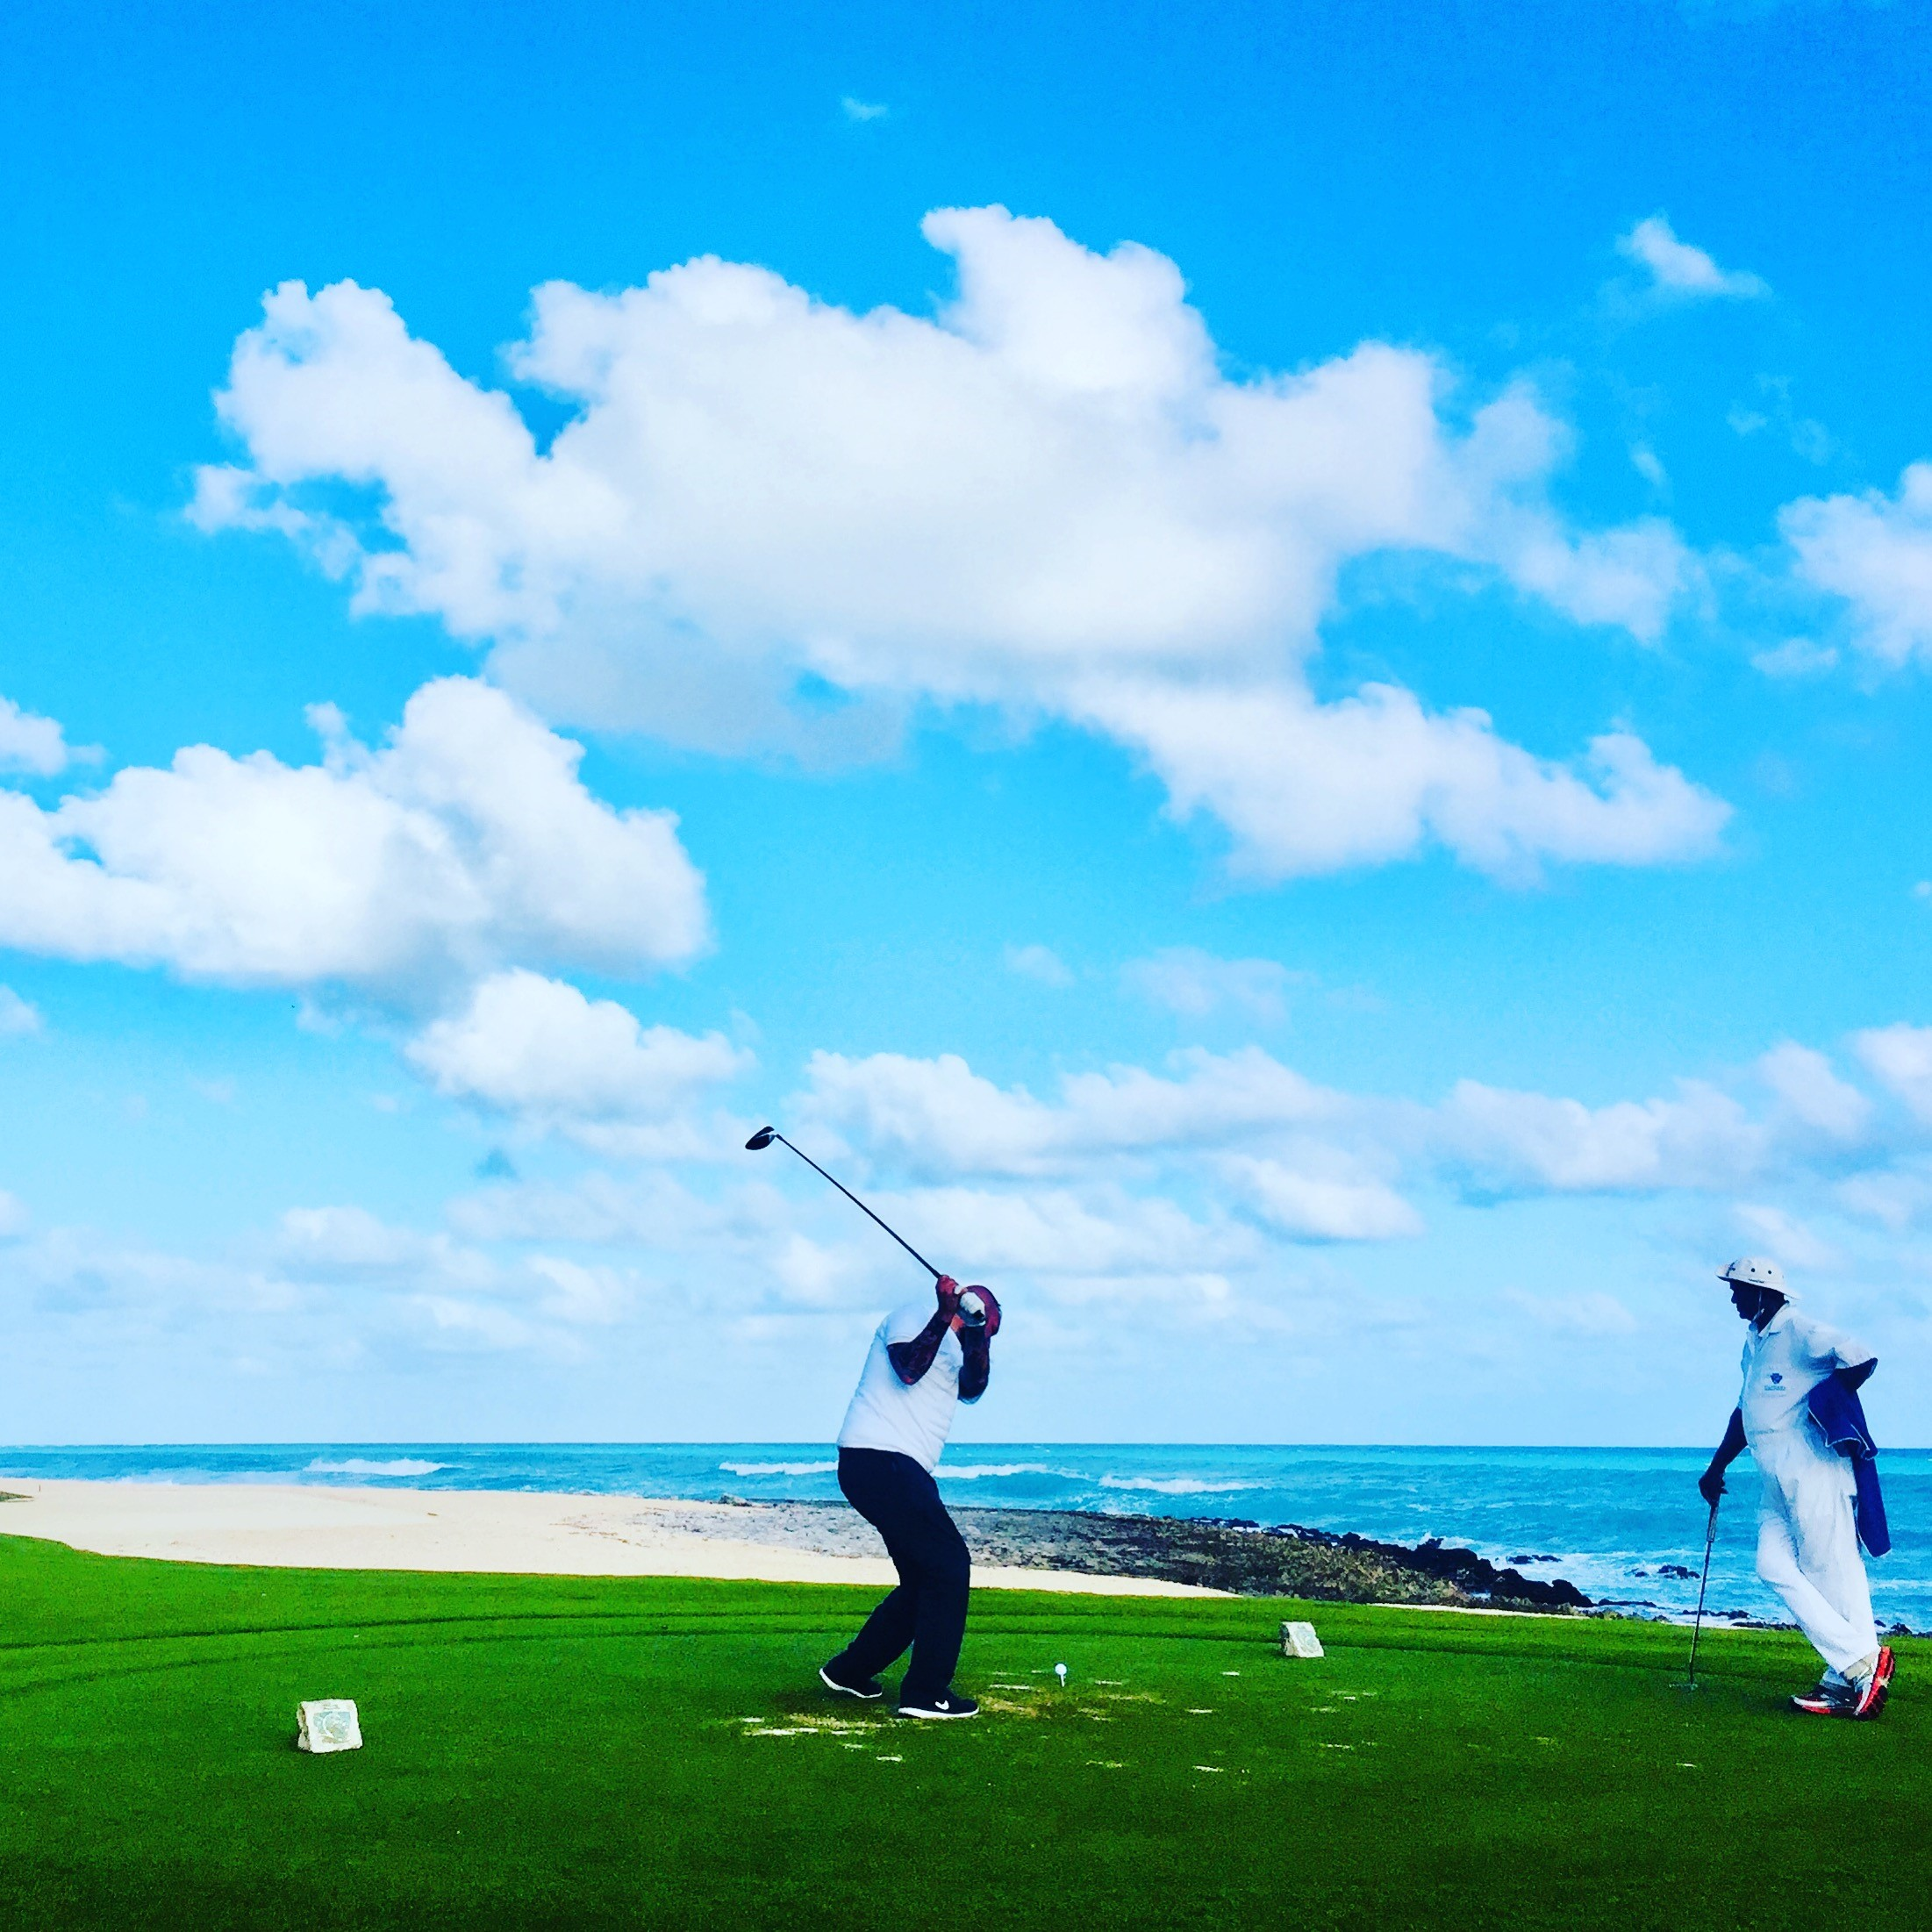 Team Golf Outing in the Caribbean